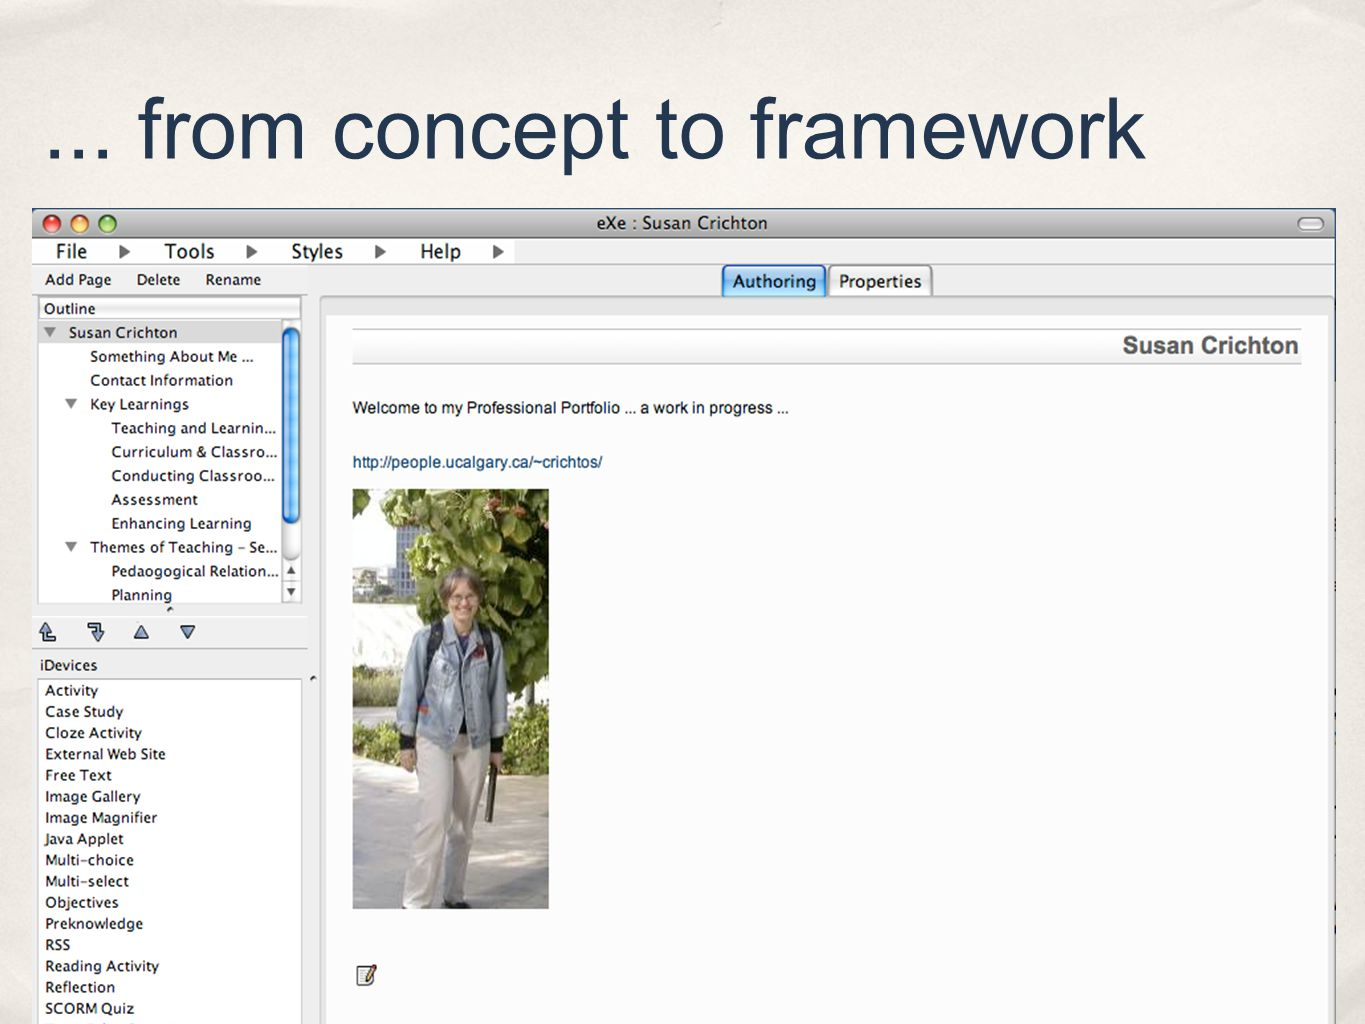 ... from concept to framework